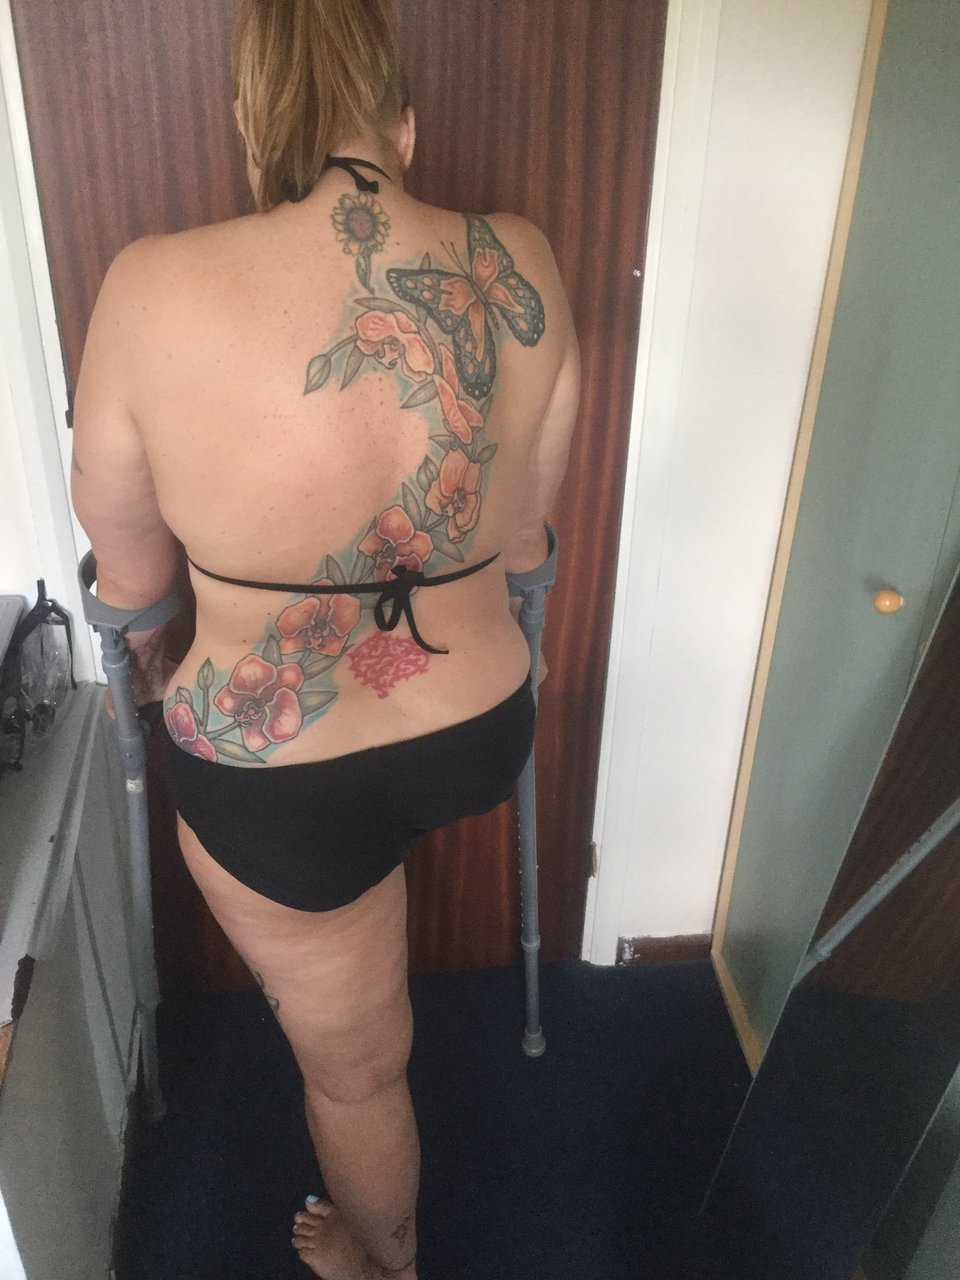 Amputees with tattoos and/or piercings